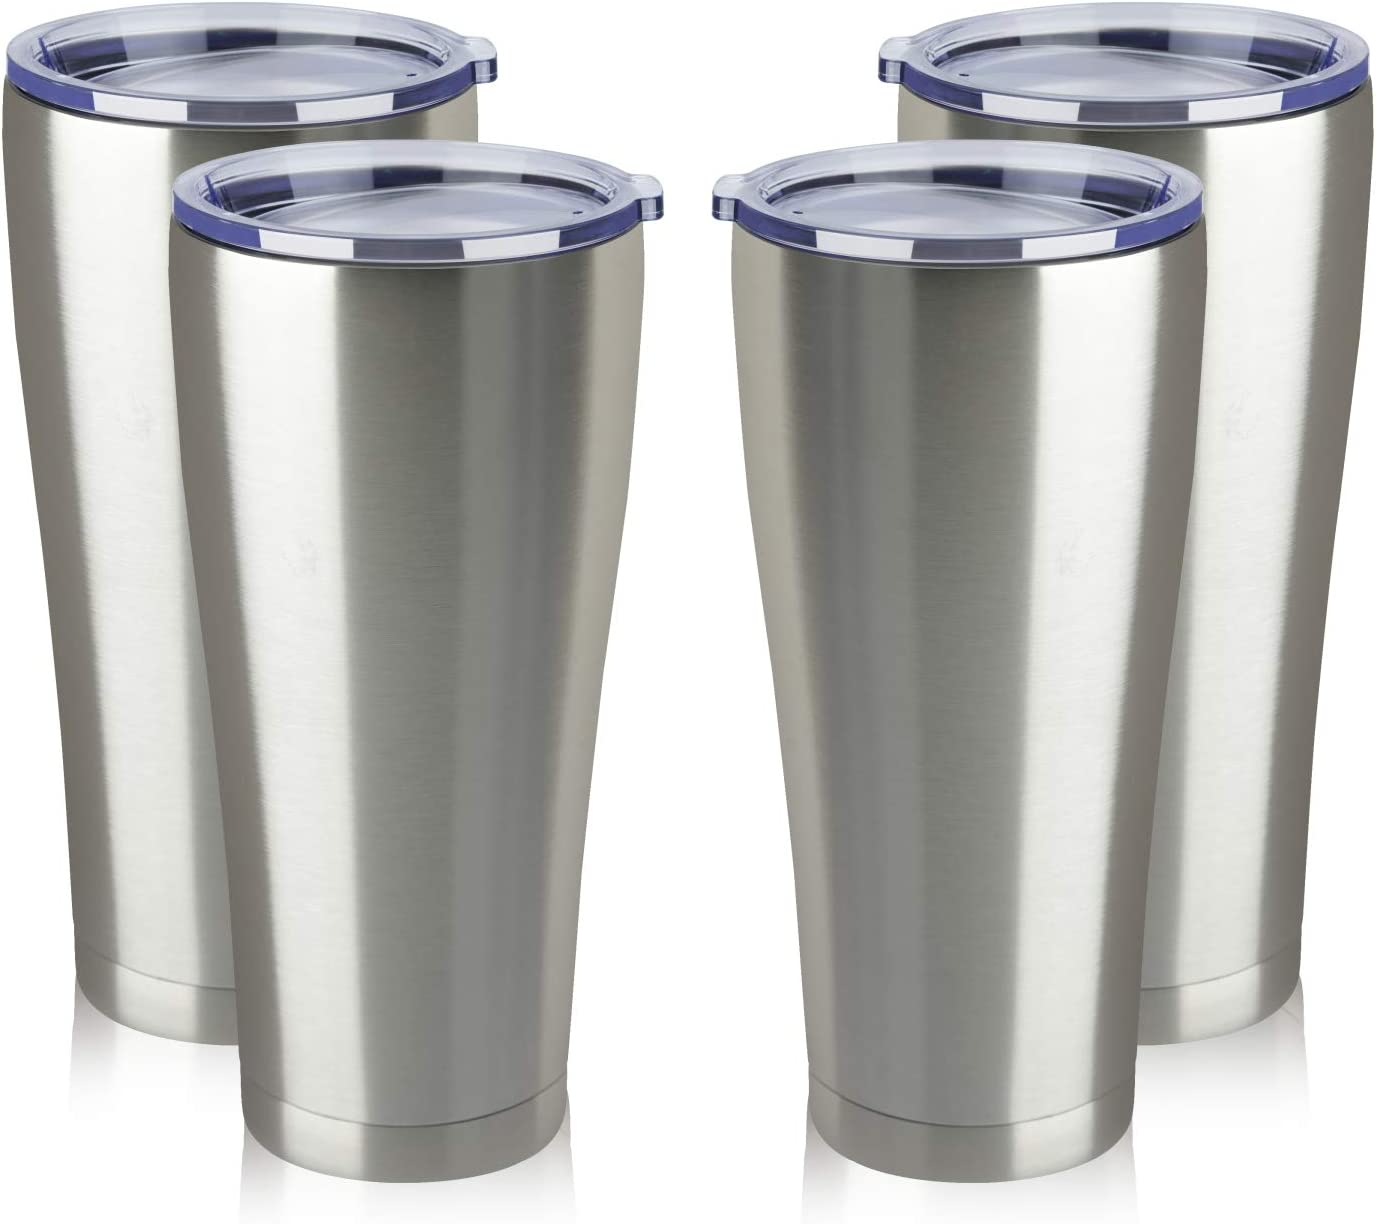 MEWAY 32oz Coffee Tumblers Bulk 4 Pack Vacuum Insulated Cups,Double Wall Stainless Steel Tumbler with Lid,Powder Coated Coffee Mugs for Ice Drink and Hot Beverage (Silver,Set of 4)